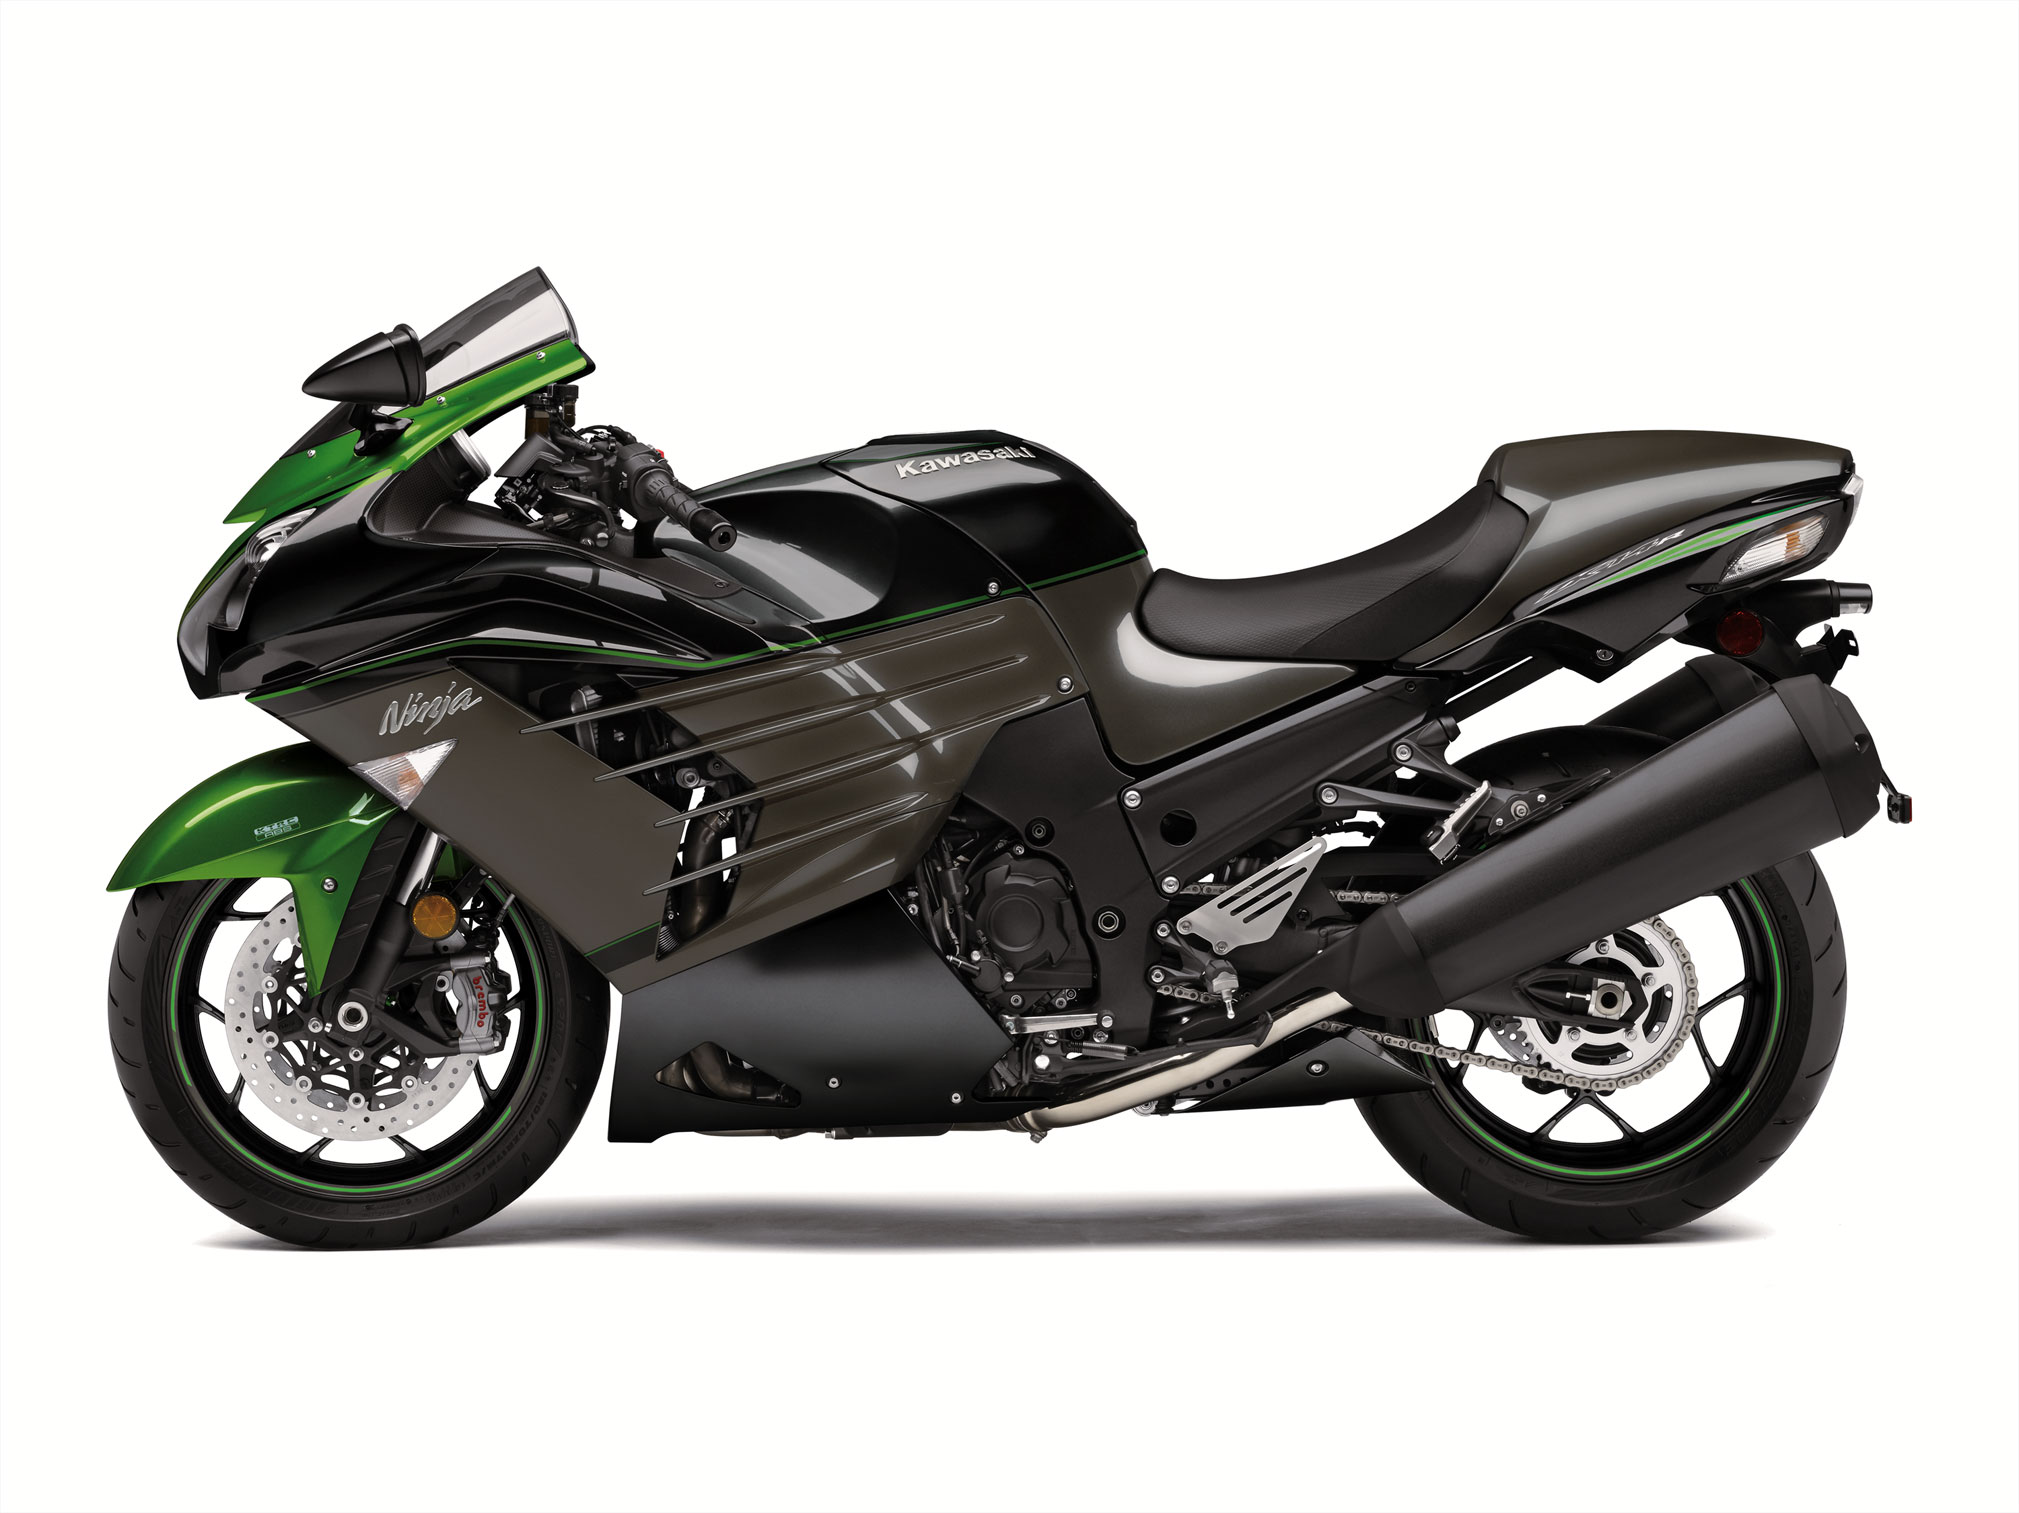 2019 Kawasaki Ninja ZX-14R ABS Guide • Total Motorcycle